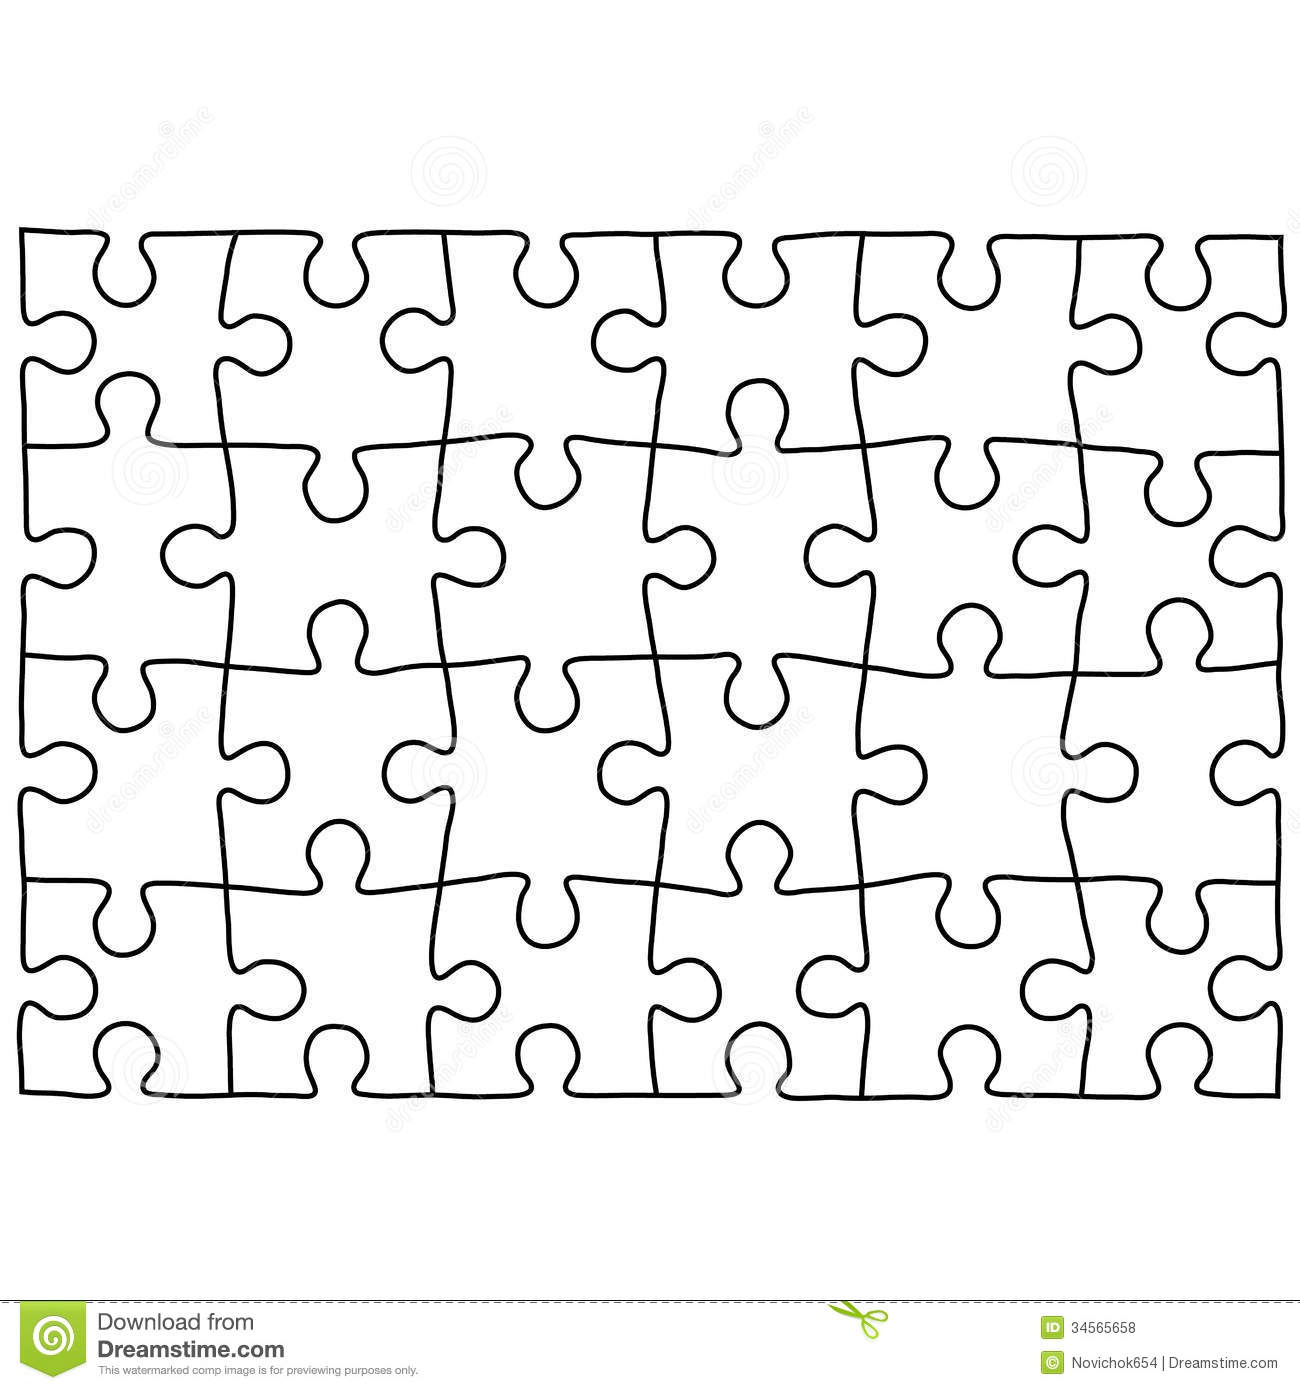 Free Puzzle Template, Download Free Clip Art, Free Clip Art On - Printable Jigsaw Puzzle Template Generator